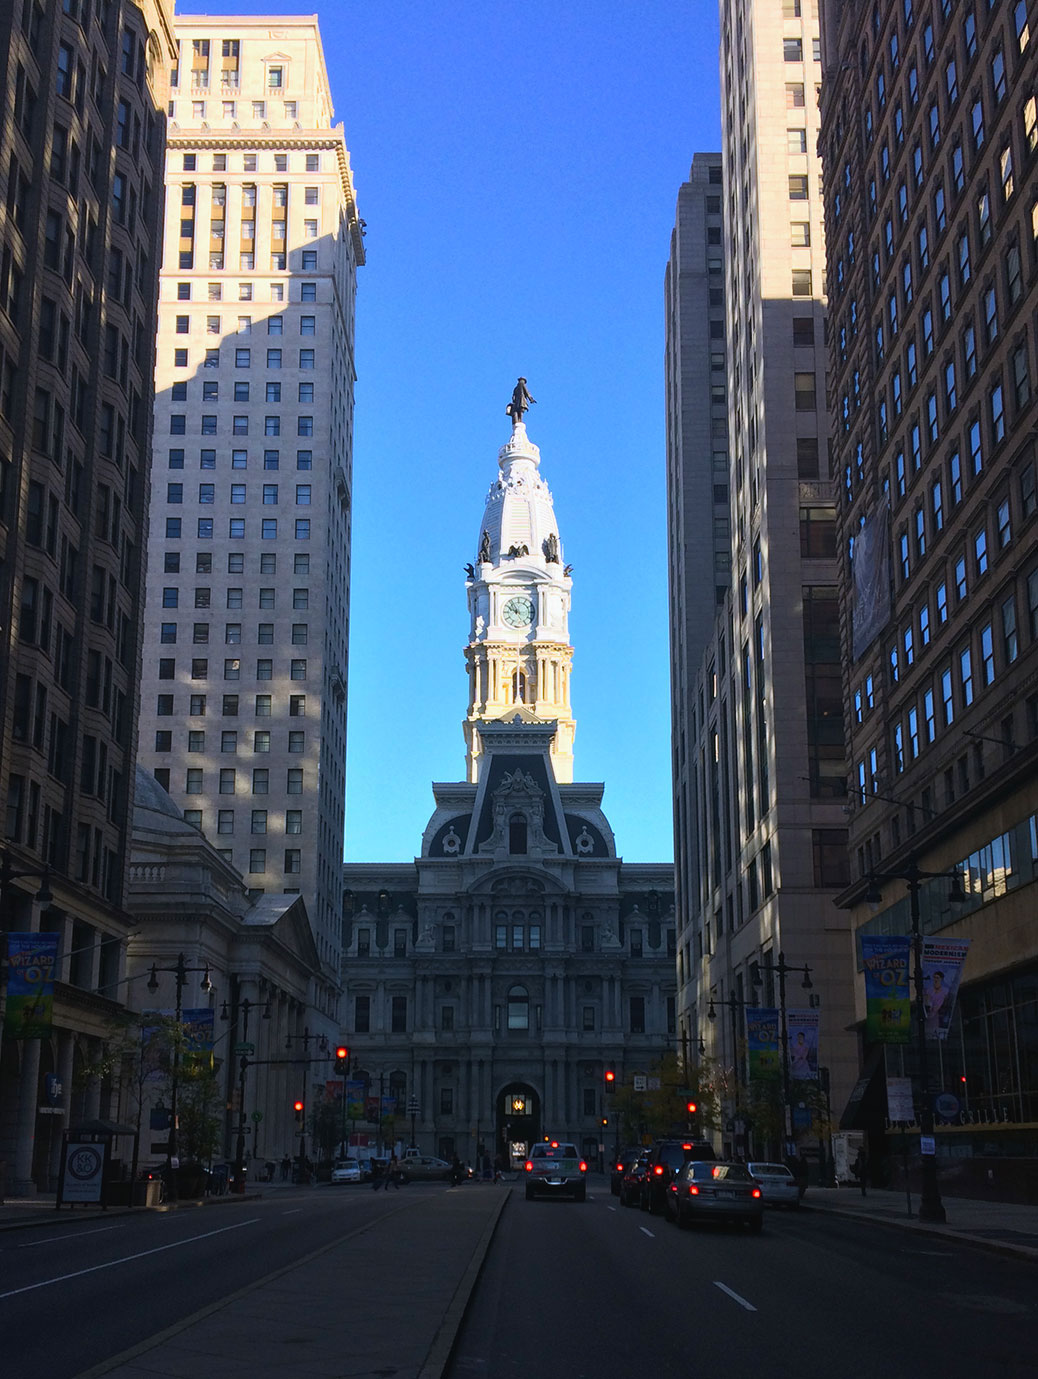 Looking down South Broad Street toward Philadelphia City Hall early on a sunny autumn morning.